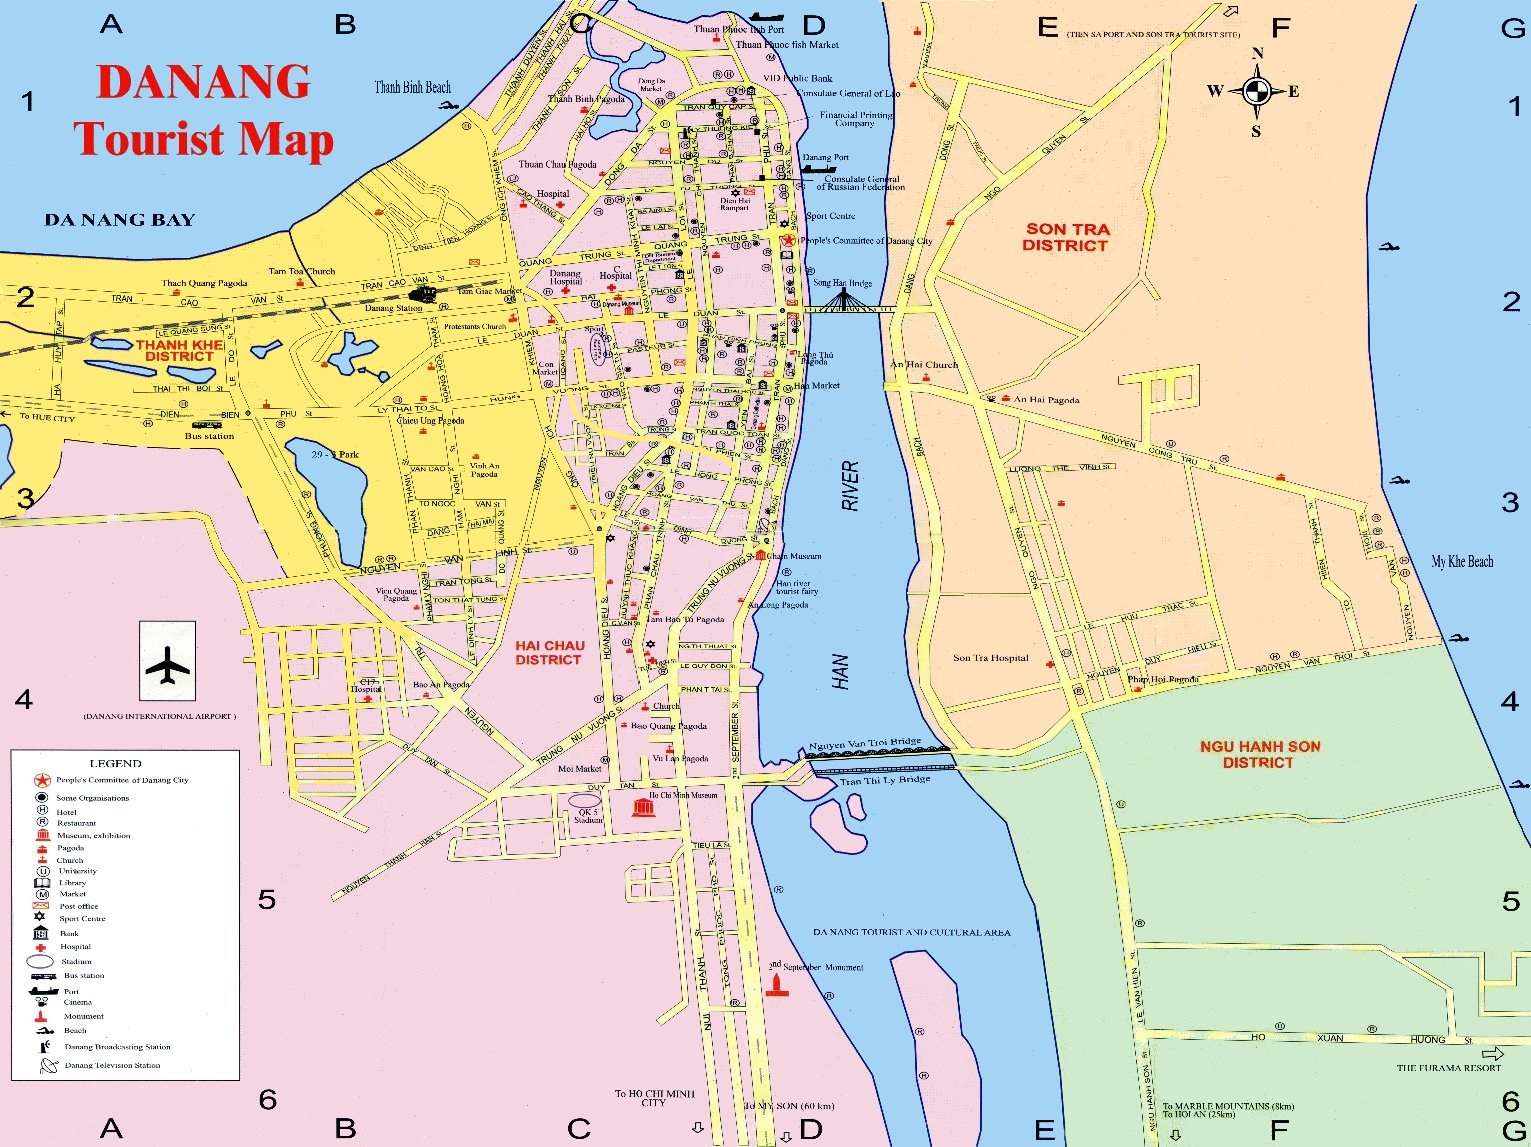 The map of da Nang (Vietnam) with landmarks, districts